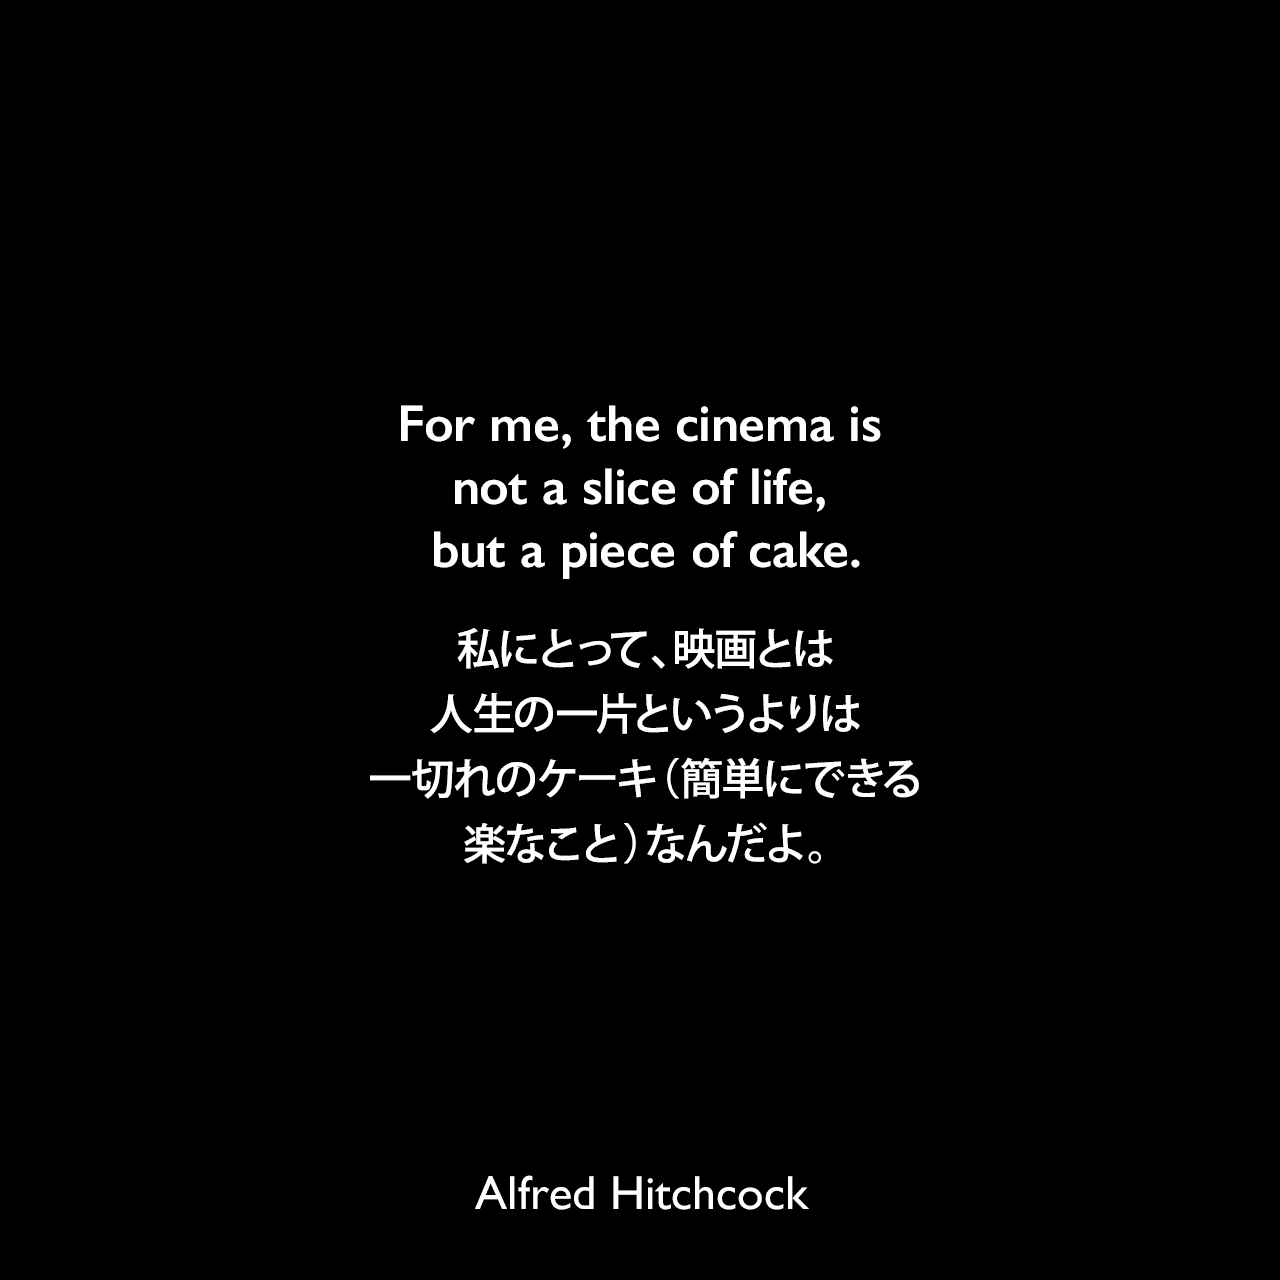 For me, the cinema is not a slice of life, but a piece of cake.私にとって、映画とは人生の一片というよりは一切れのケーキ(簡単にできる楽なこと)なんだよ。Alfred Hitchcock